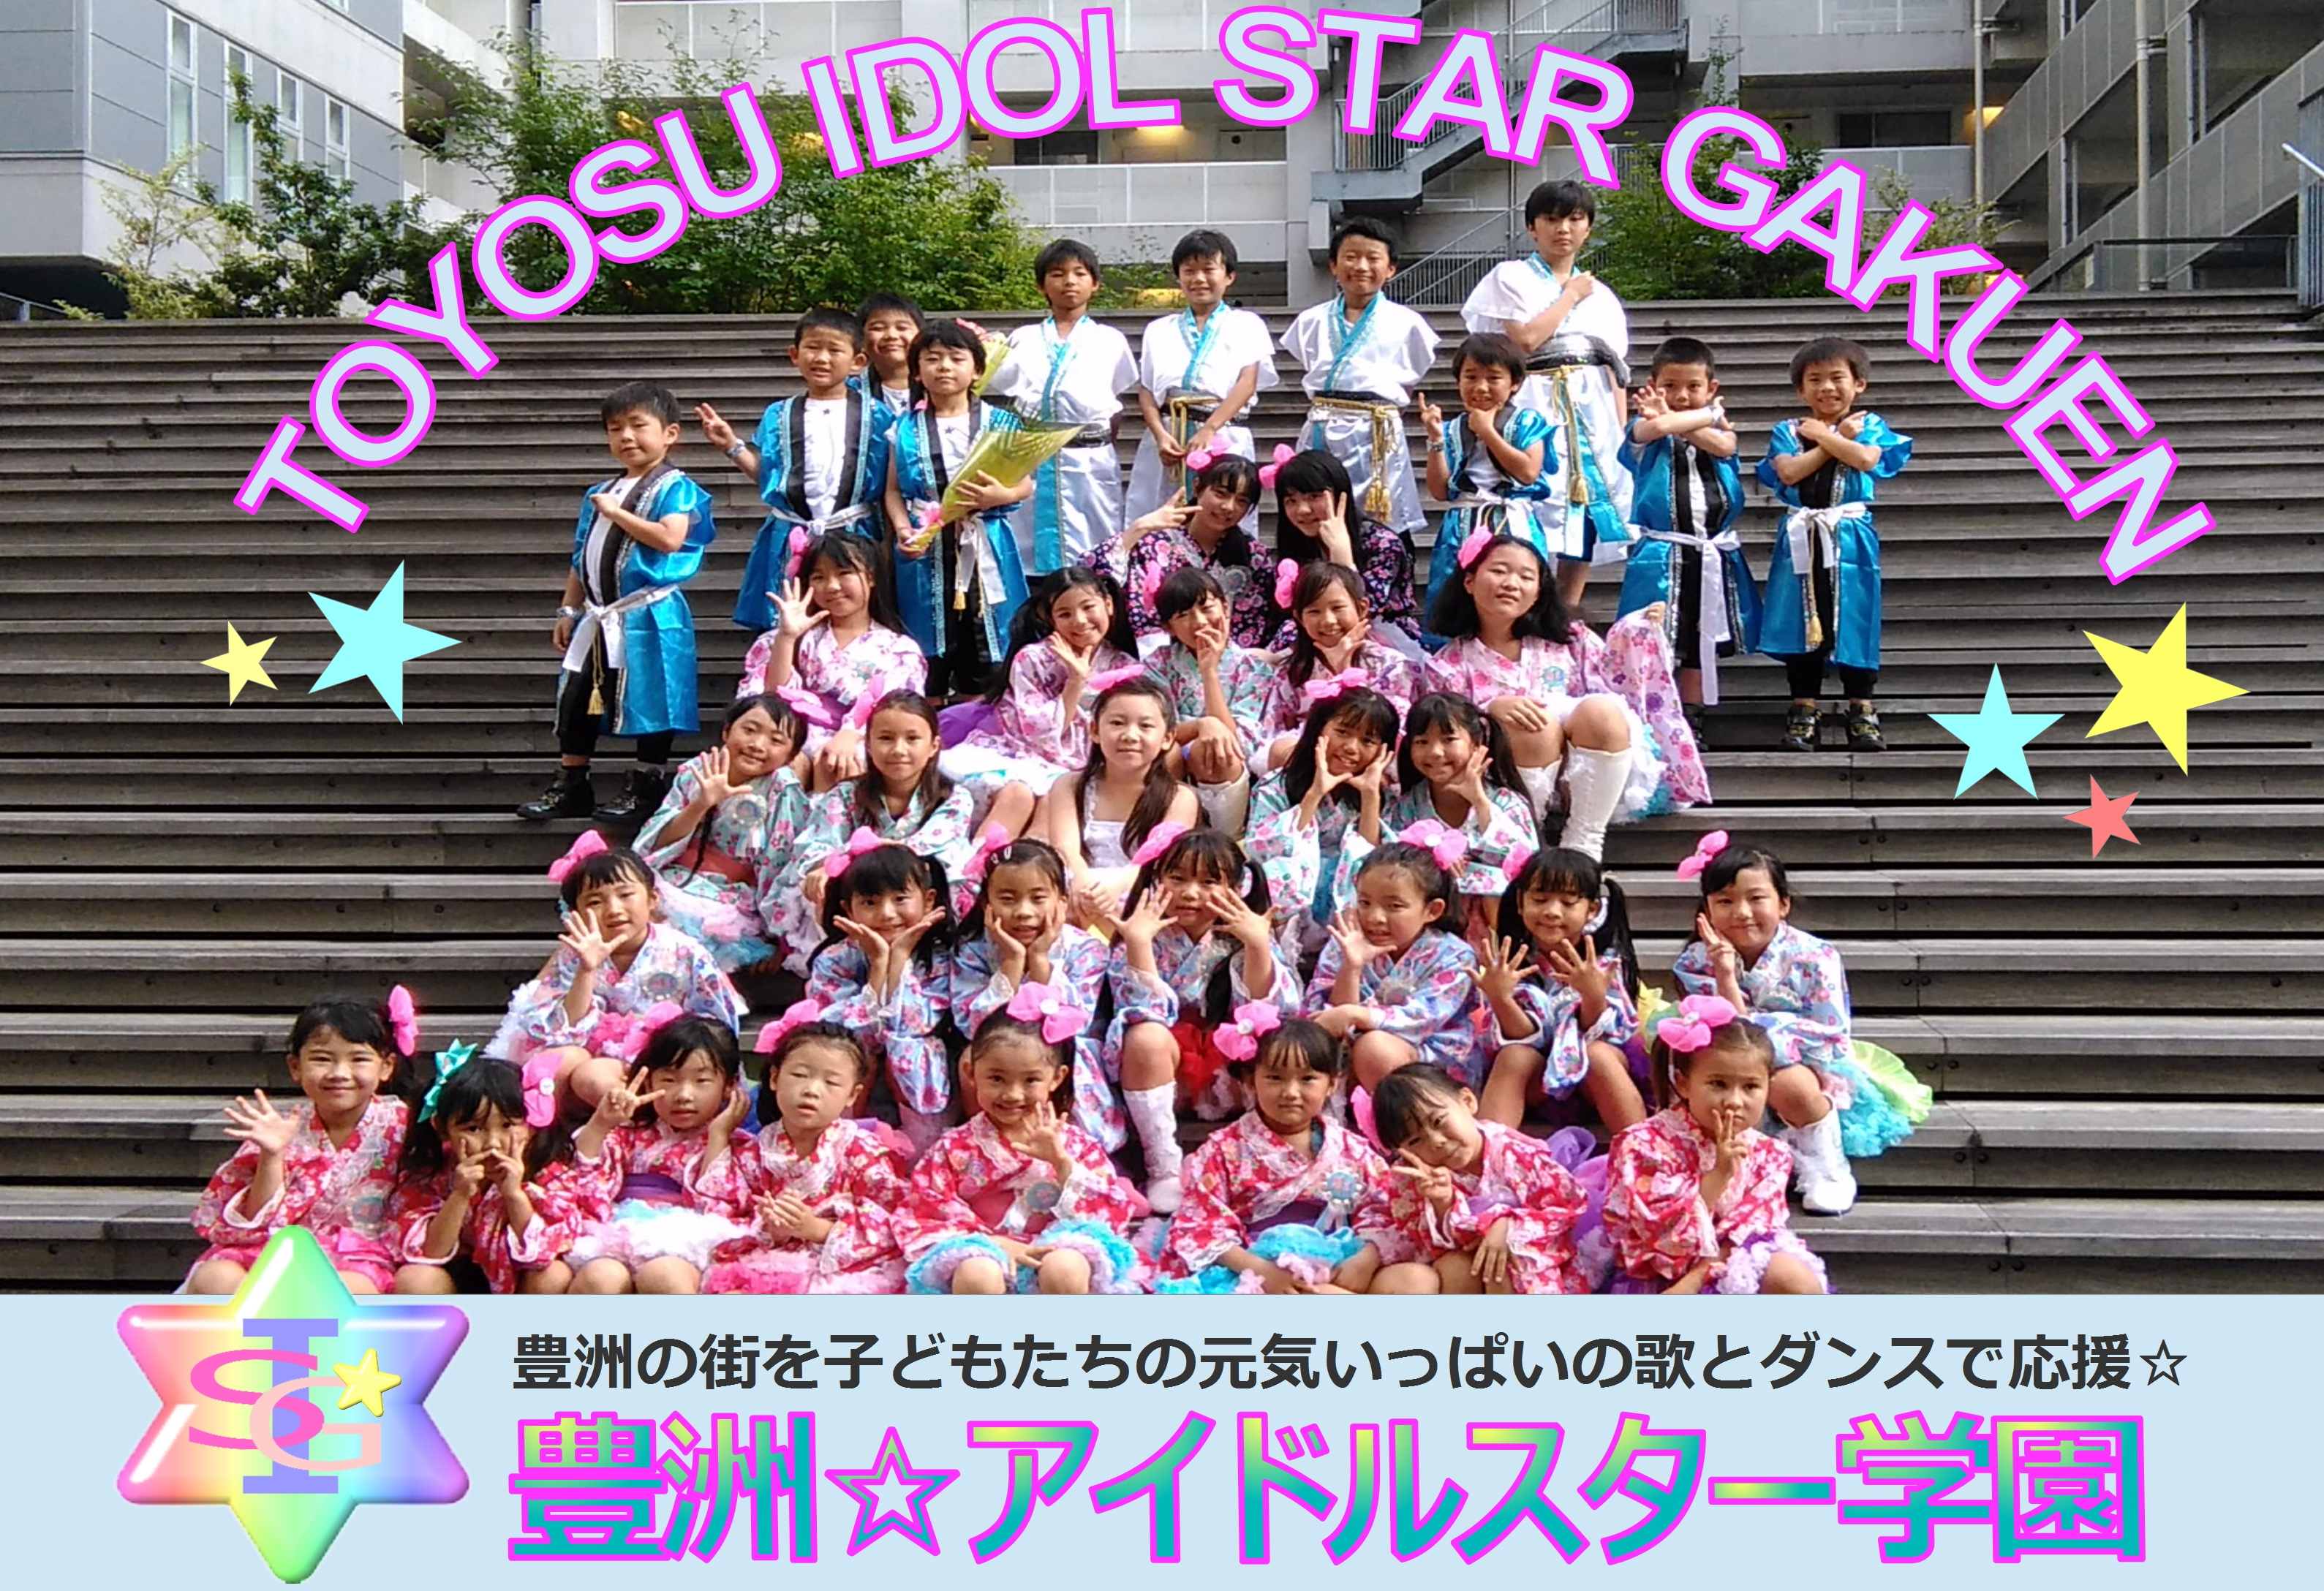 Toyosu ☆Idol star school